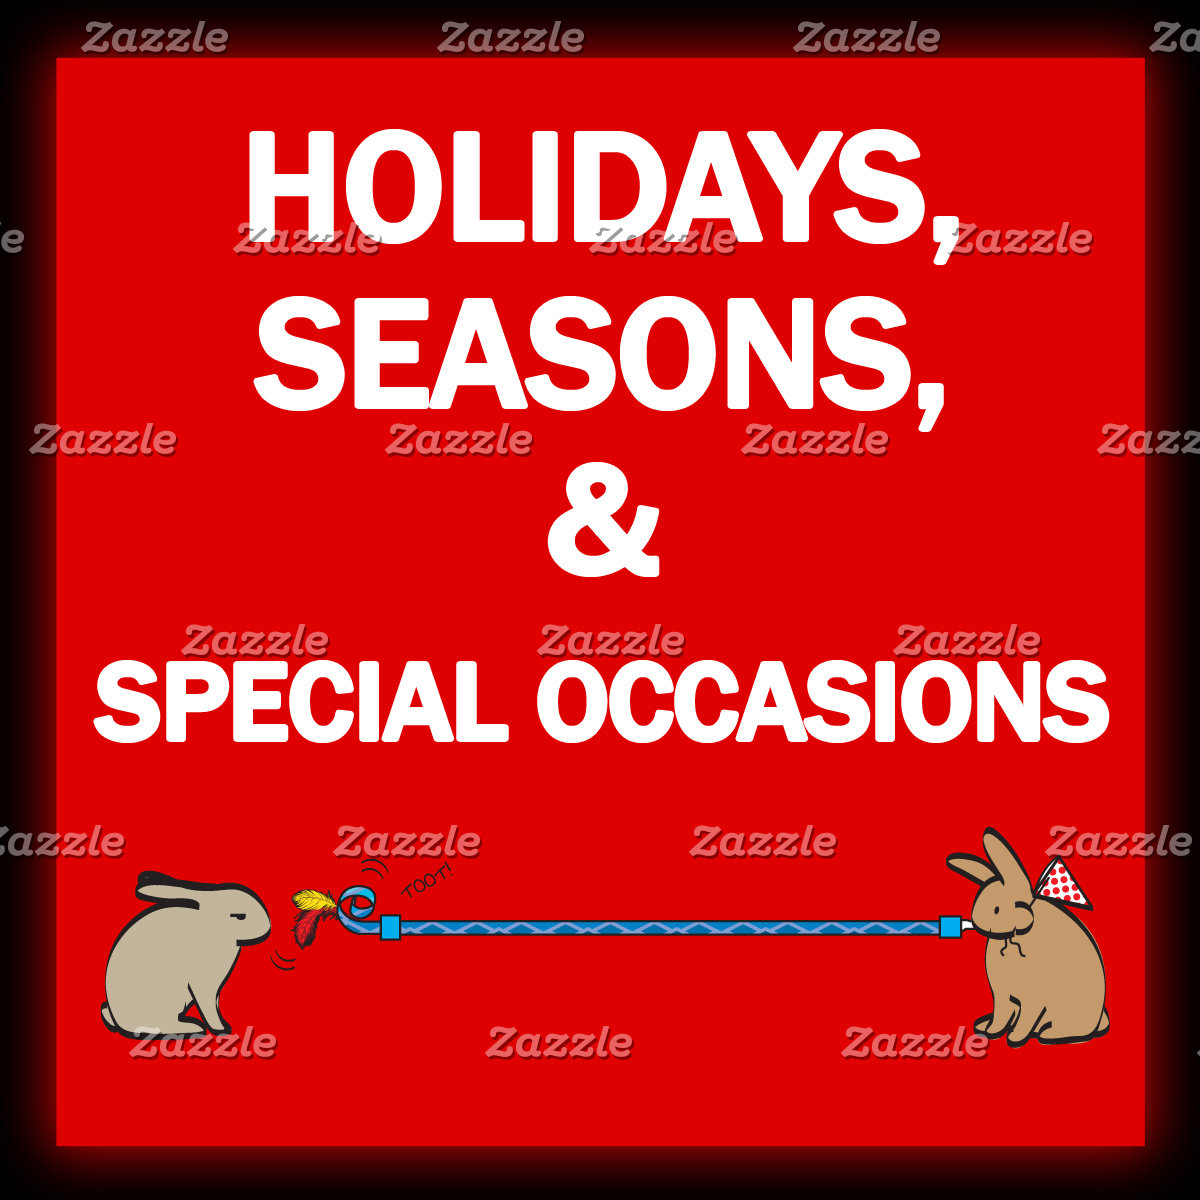 HOLIDAYS, SEASON and SPECIAL OCCASIONS